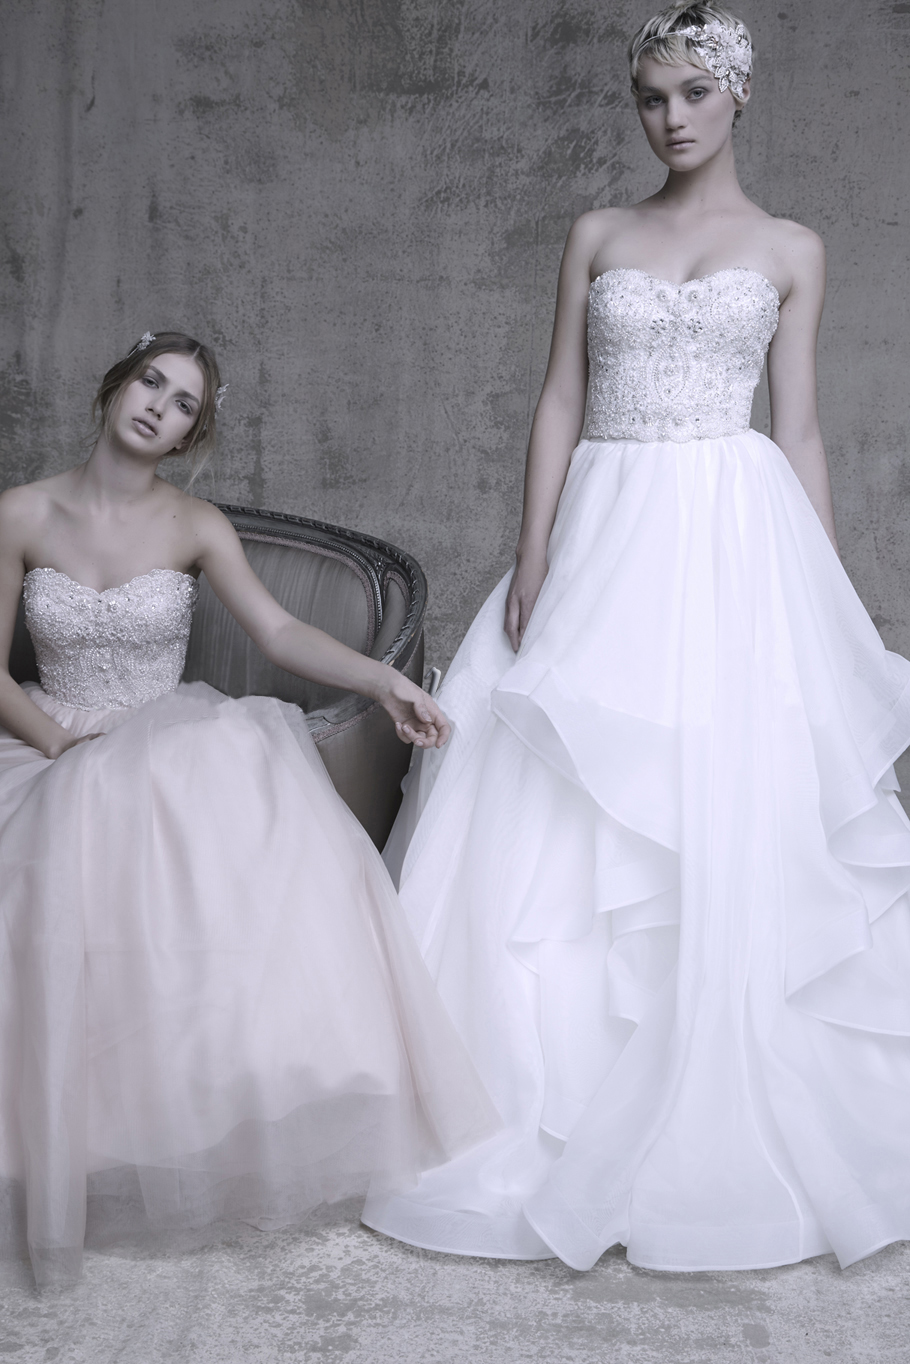 Design your own wedding dress.... - Bleu Bridal Gowns